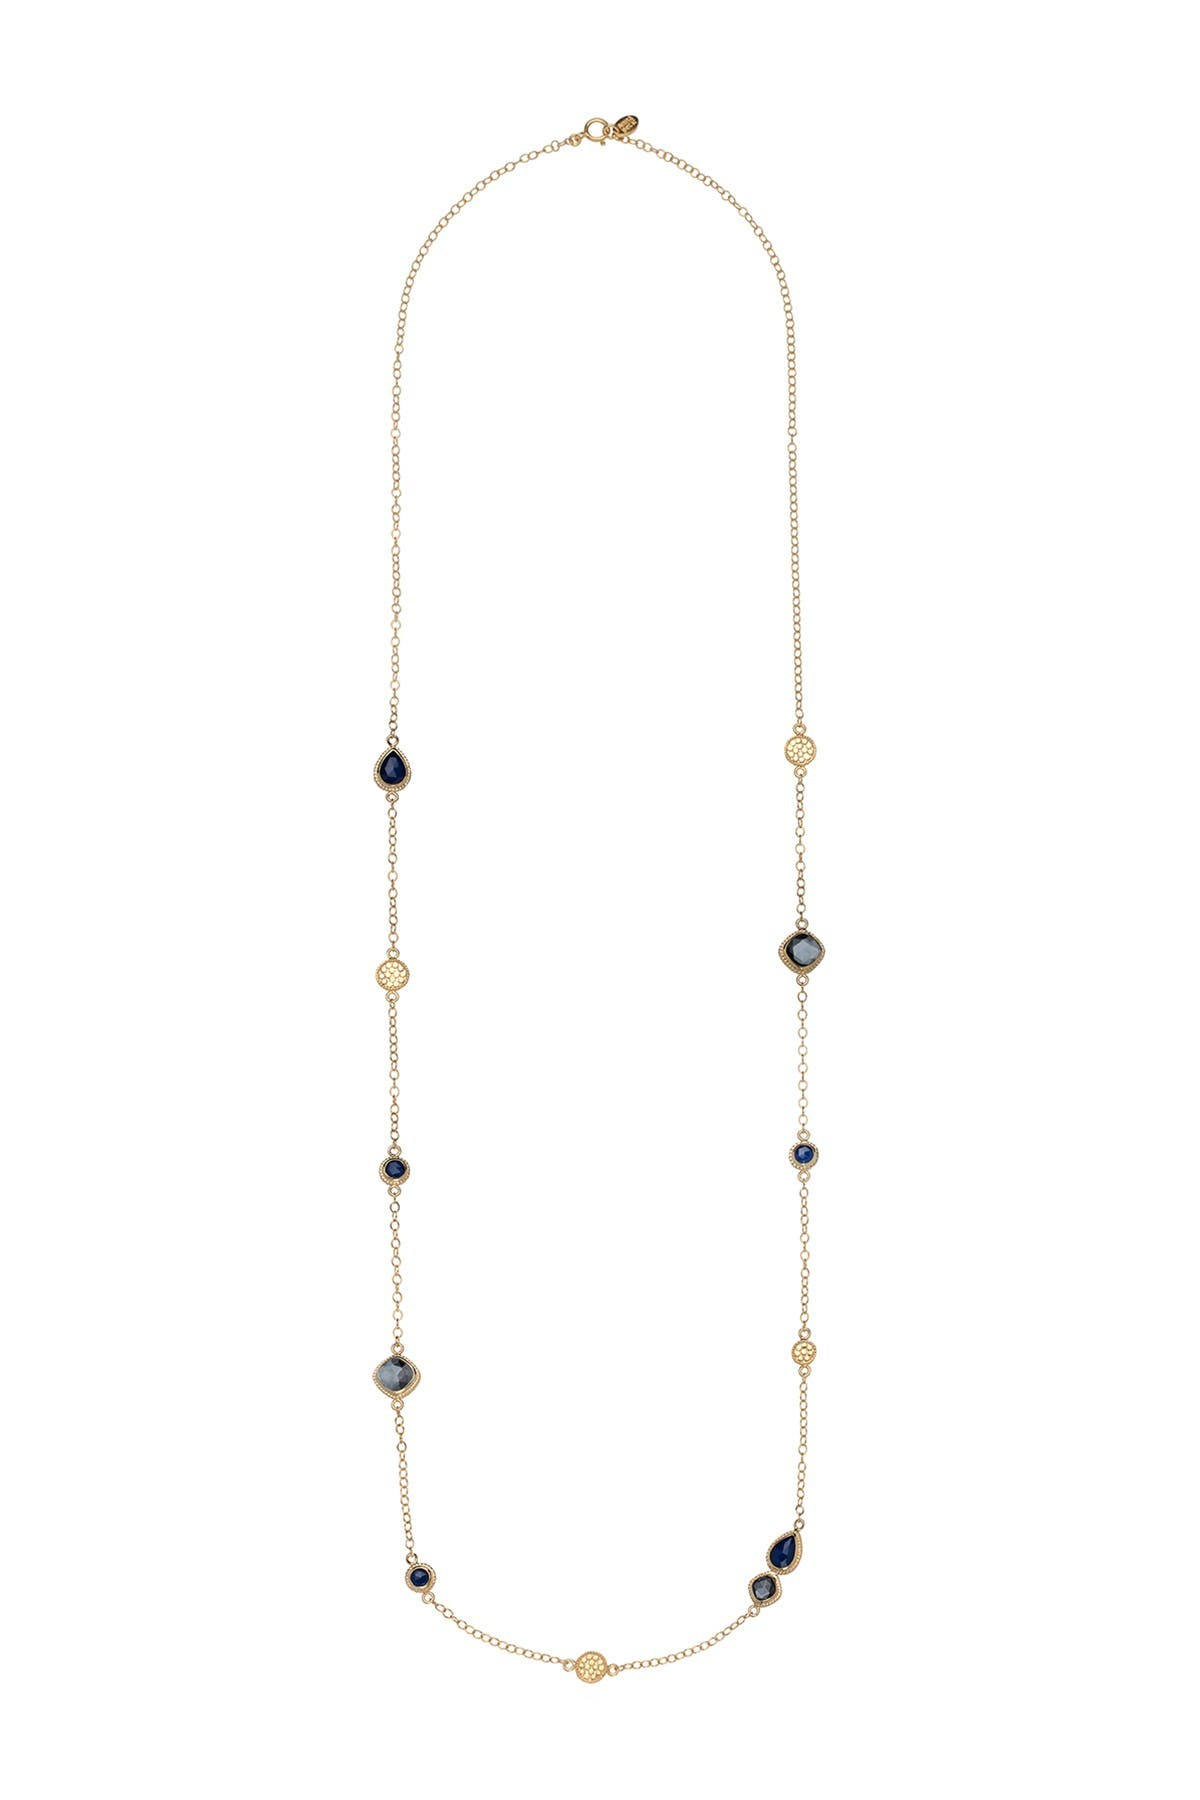 Image of Anna Beck 18K Gold Plated Sterling Silver Hematite & Sapphire Station Necklace